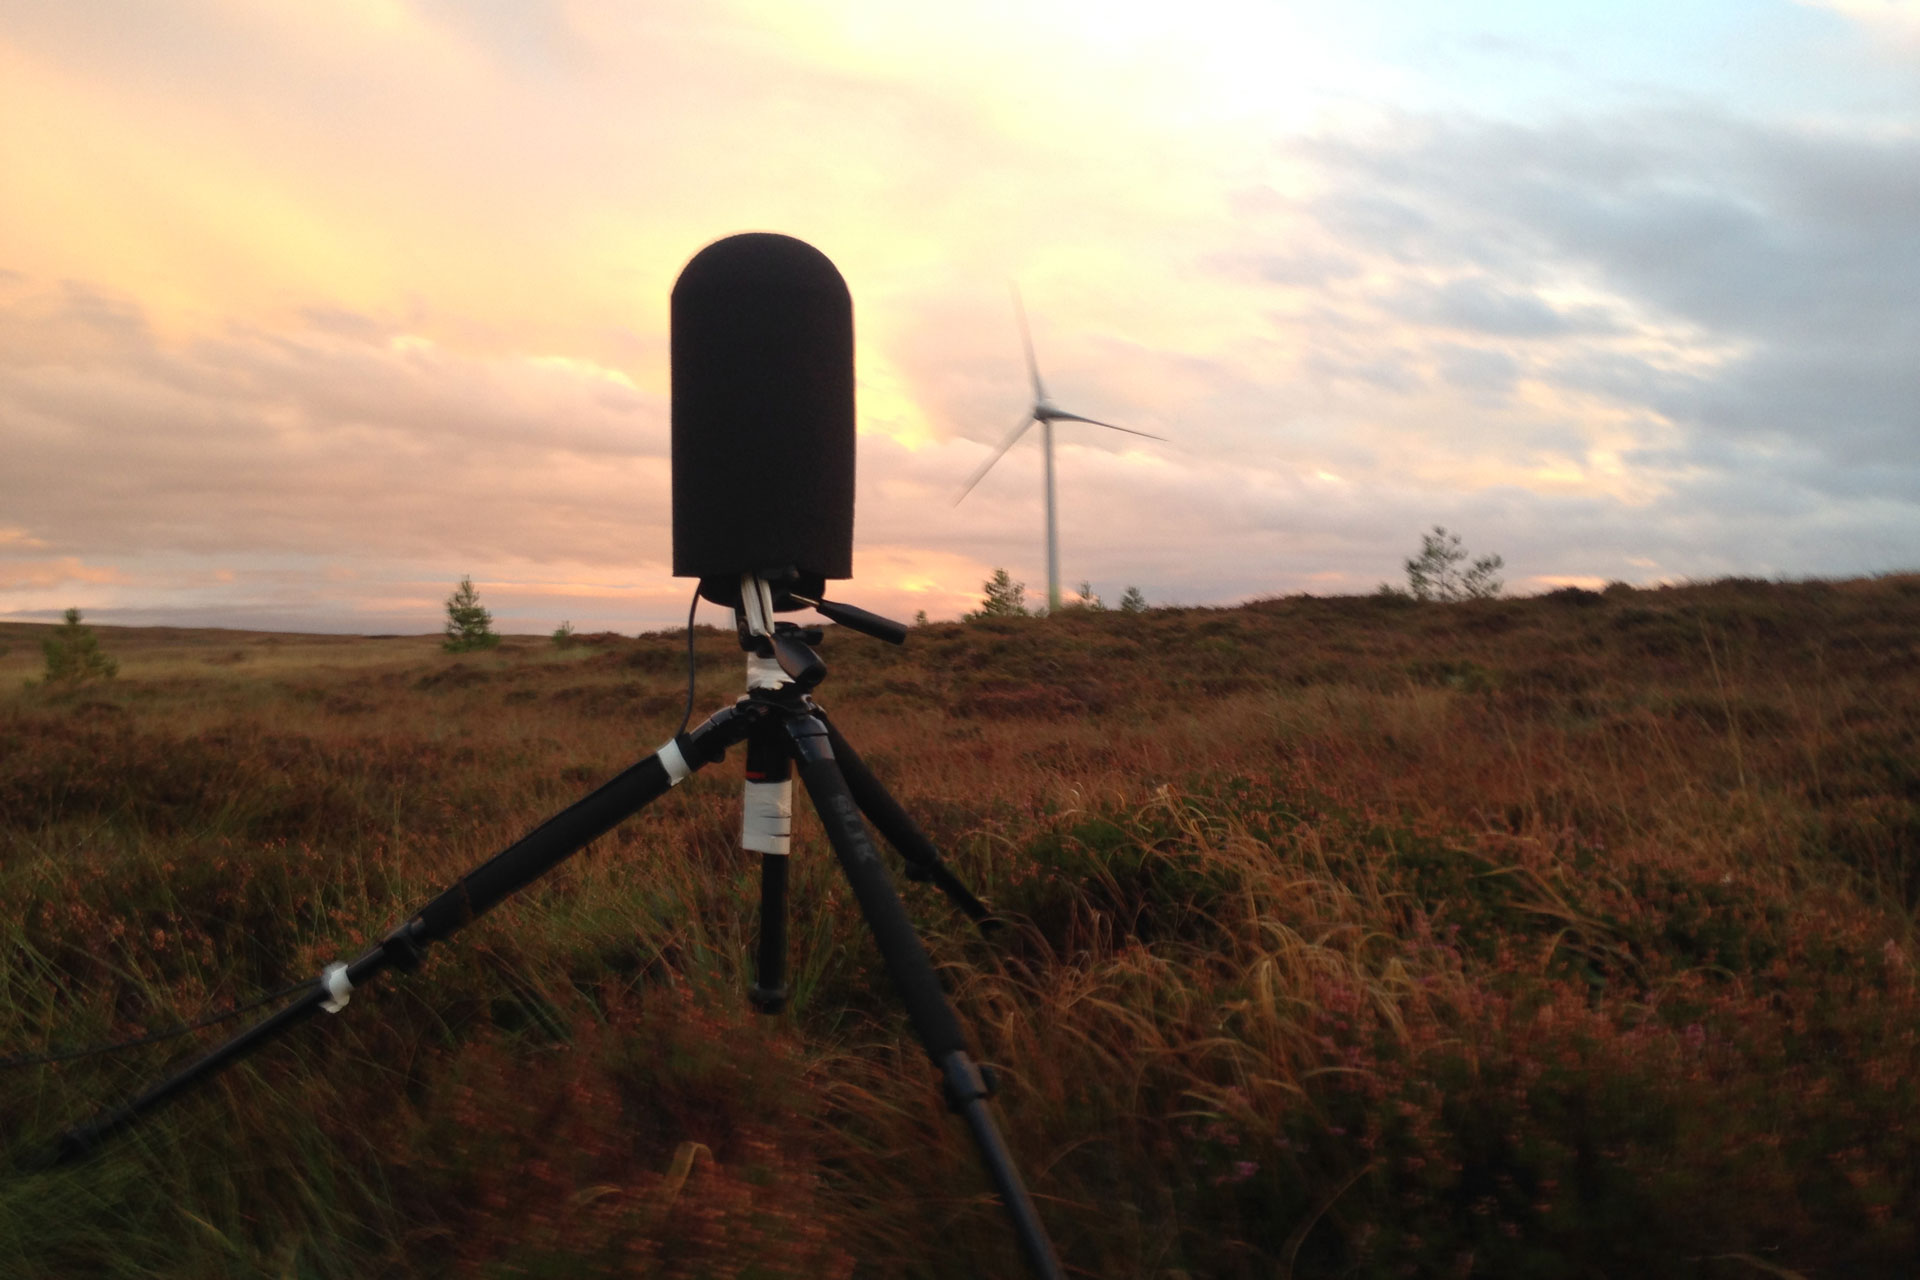 Measurement of wind turbine noise